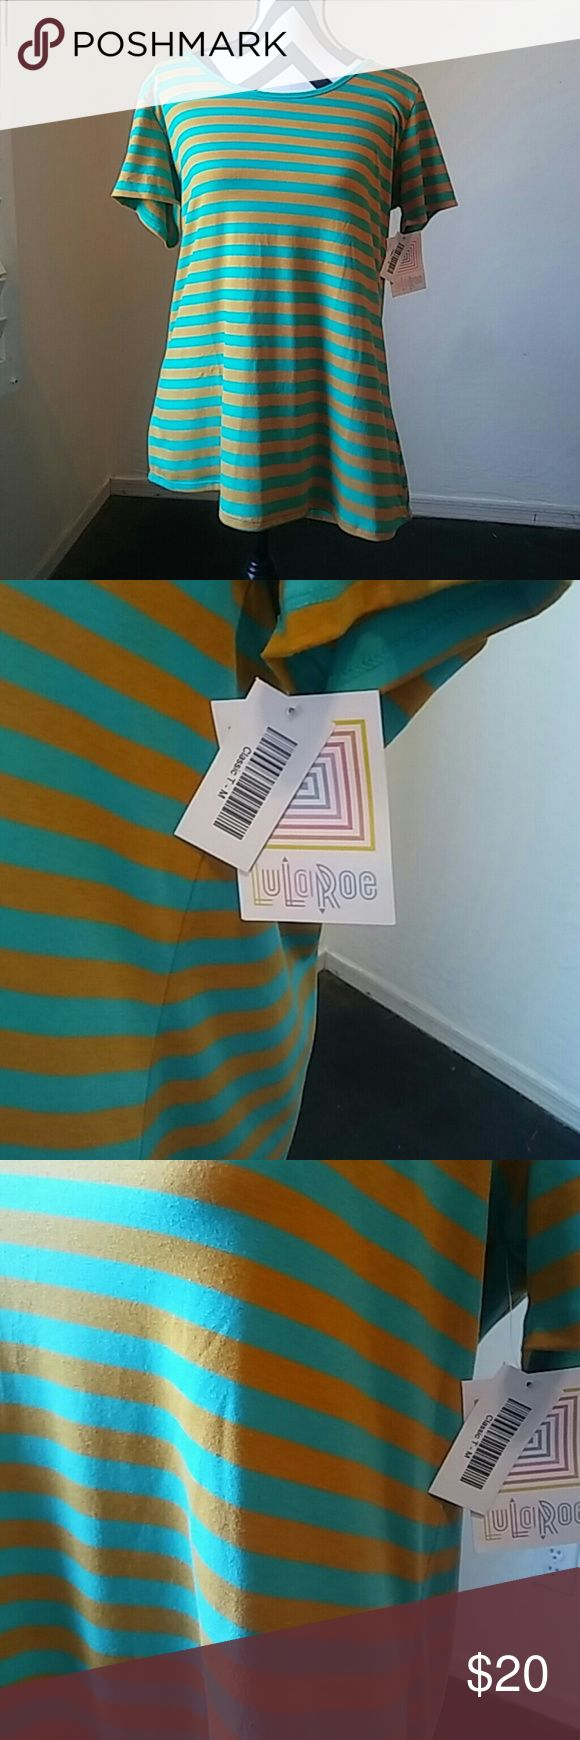 "New w tags LulaRoe M Classic T stripped LulaRoe M Classic T Gold and Teal stripped colors. Longer in the back. Approx 42"" bust and 22"" in lenght.  According to the sizing chart this size fits best sizes 10-13 but it is stretchy and can go up a couple sizes.  The classic T is a wardrobe staple with short sleeves and high round neck. LuLaRoe Tops Tees - Short Sleeve"